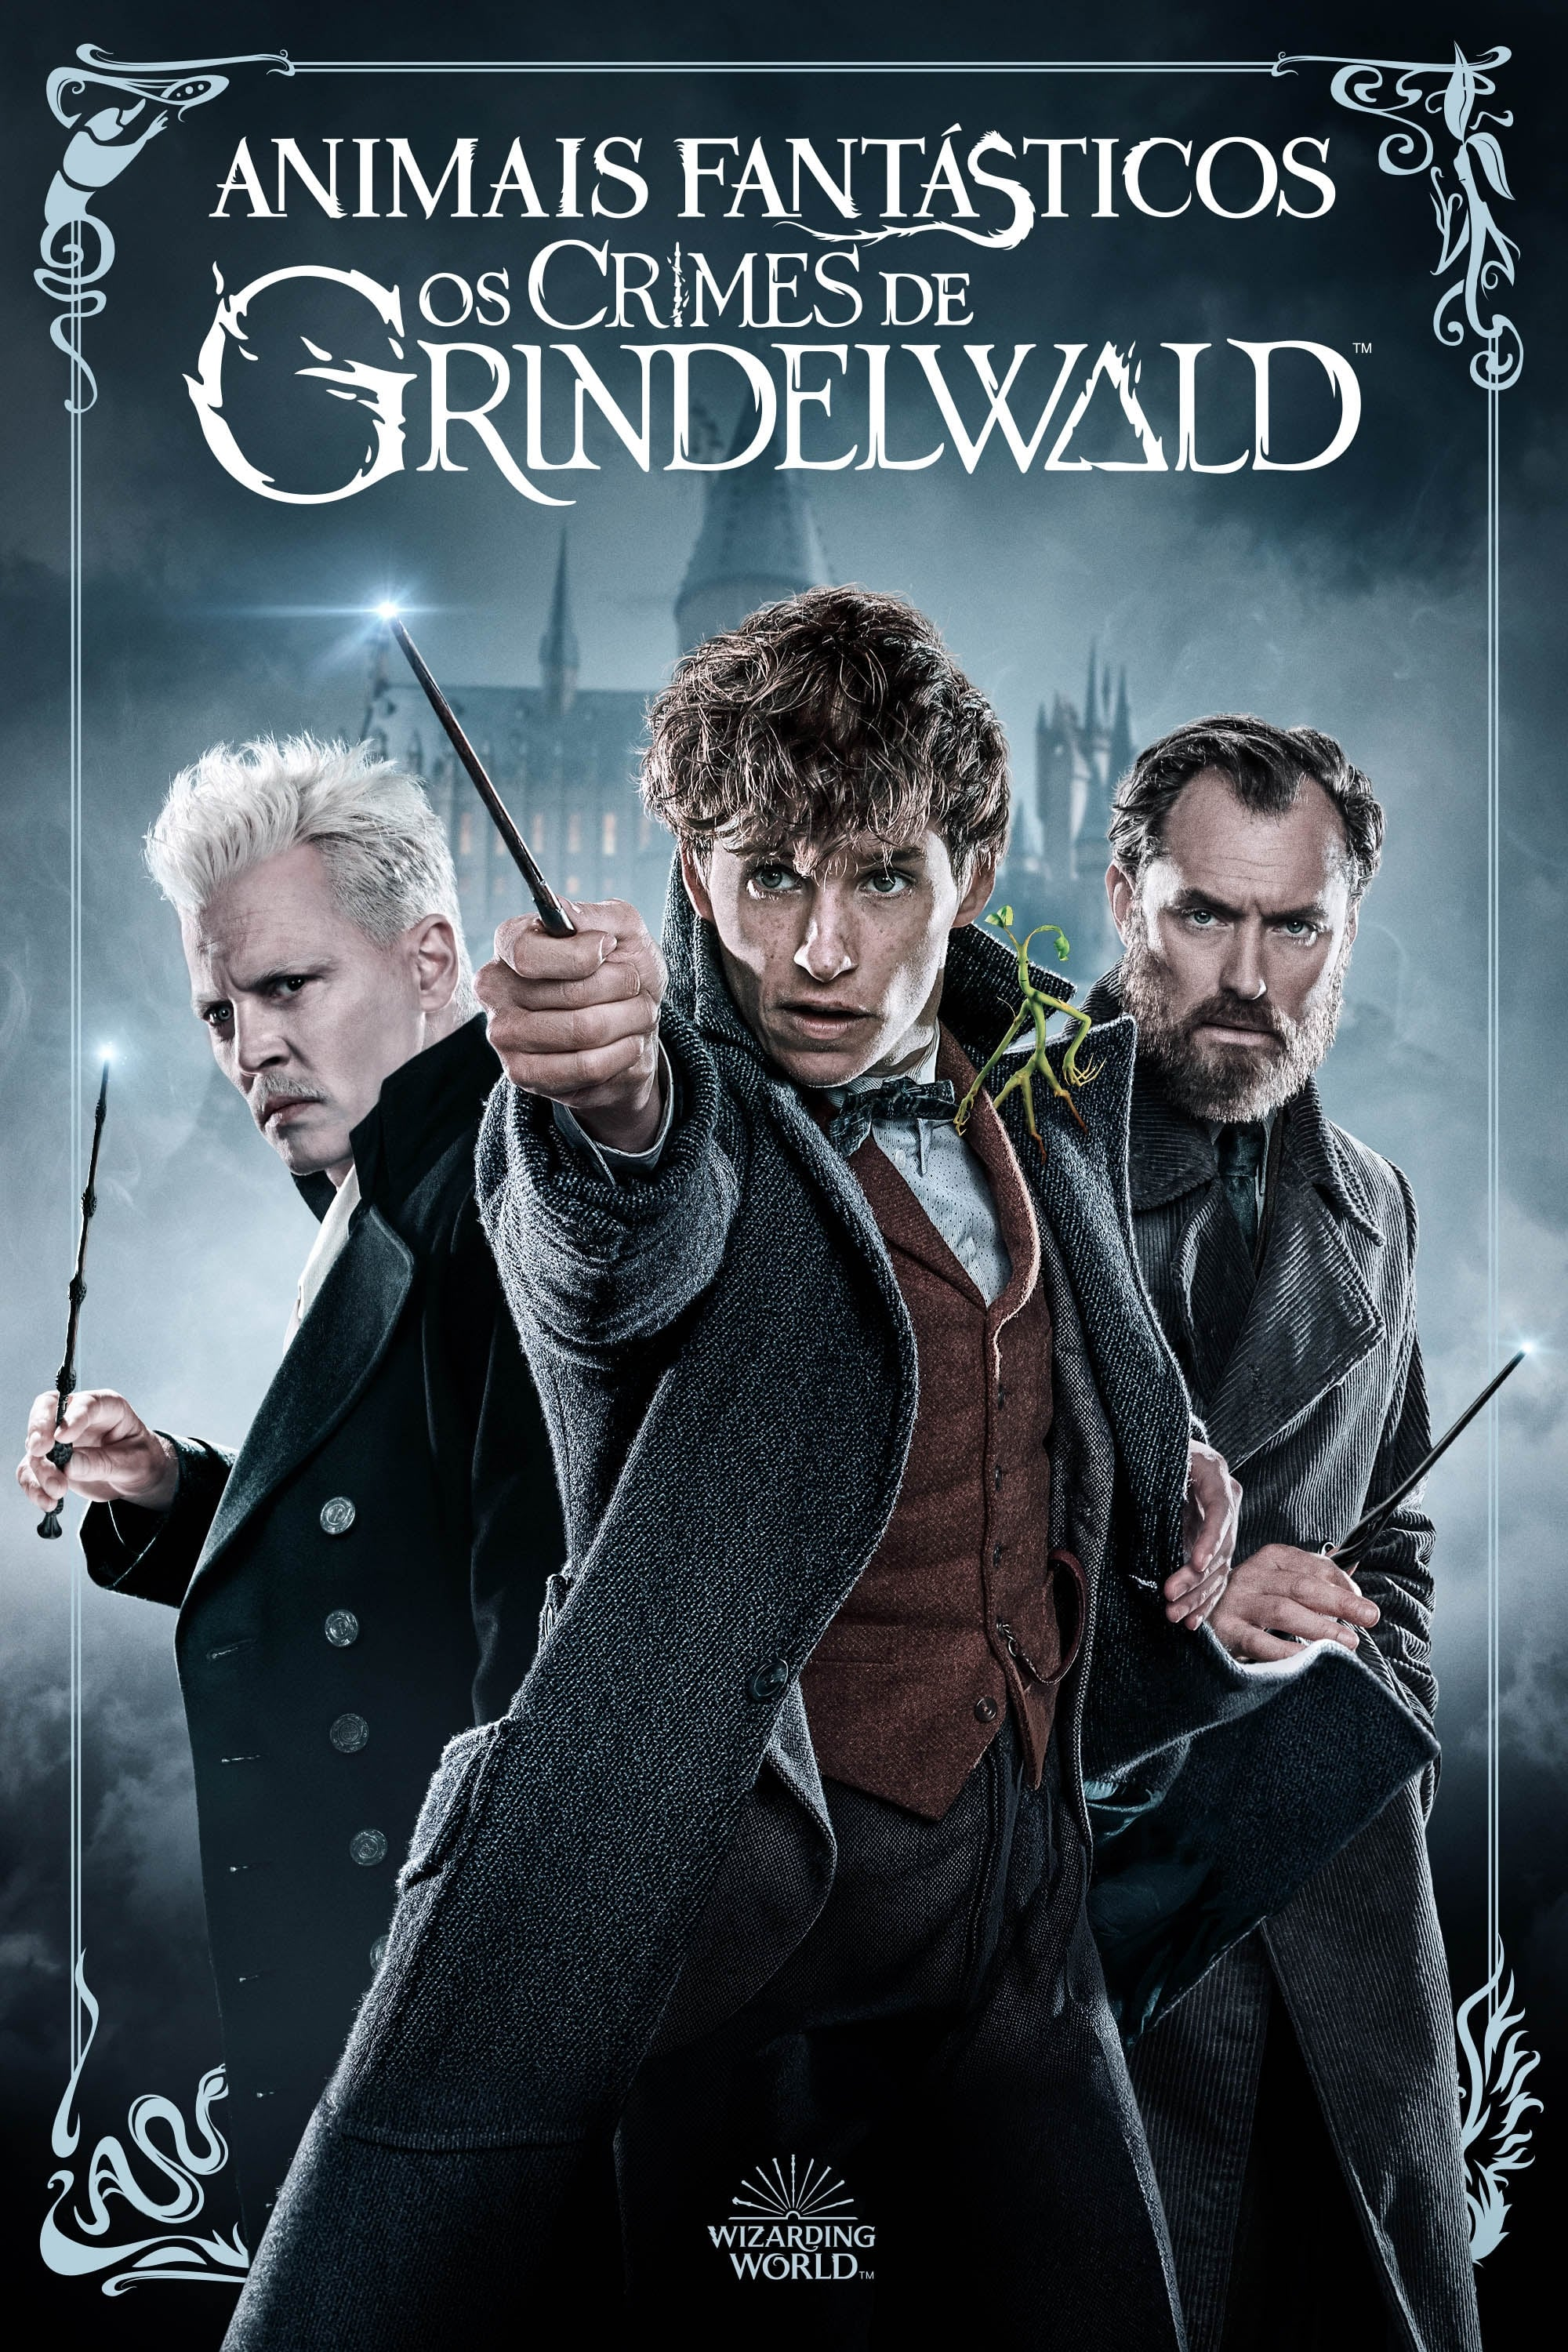 Animais Fantásticos - Os Crimes de Grindelwald (2019) Torrent - WEB-DL 720p e 1080p Dublado / Dual Áudio 5.1 Download